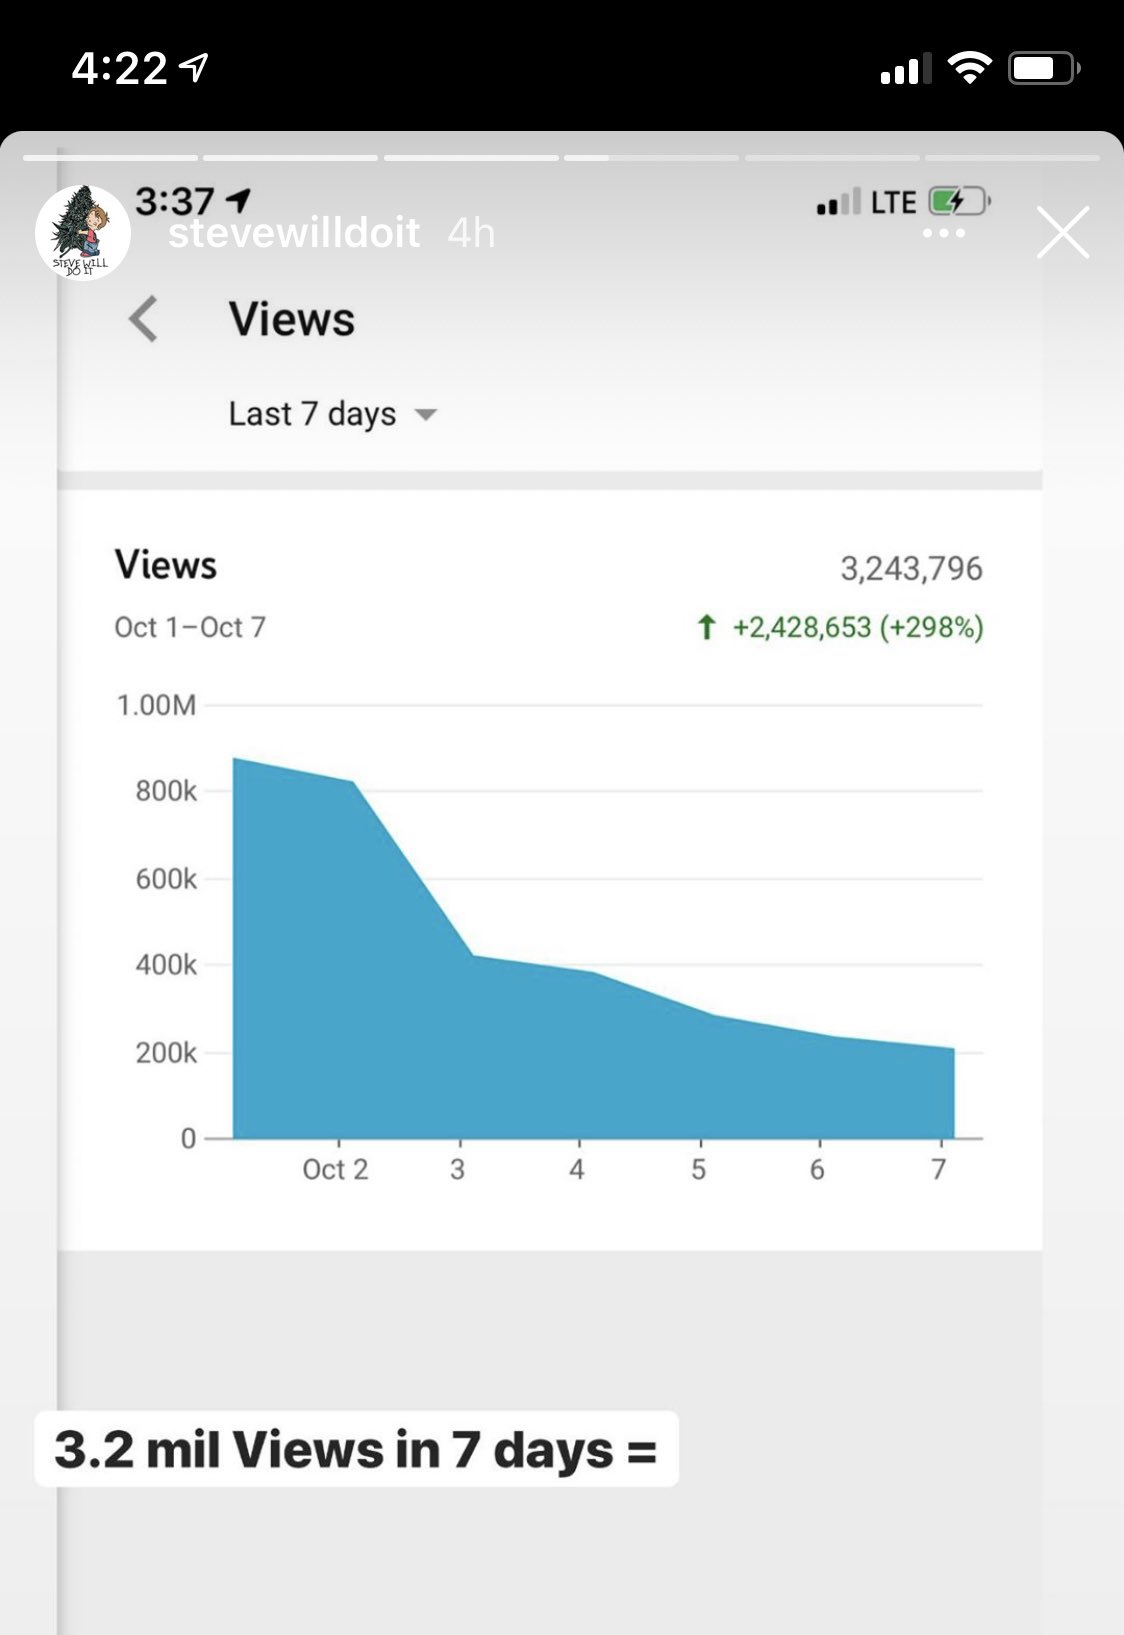 Jpa On Twitter Being Demonetized Sucks Nelk Shared Their Youtube Ad Revenue And Views For The Last 7 Days 3 2m Views 0 10 In Ad Rev This Is Why They Have To Create How much money does stevewilldoit make? demonetized sucks nelk shared